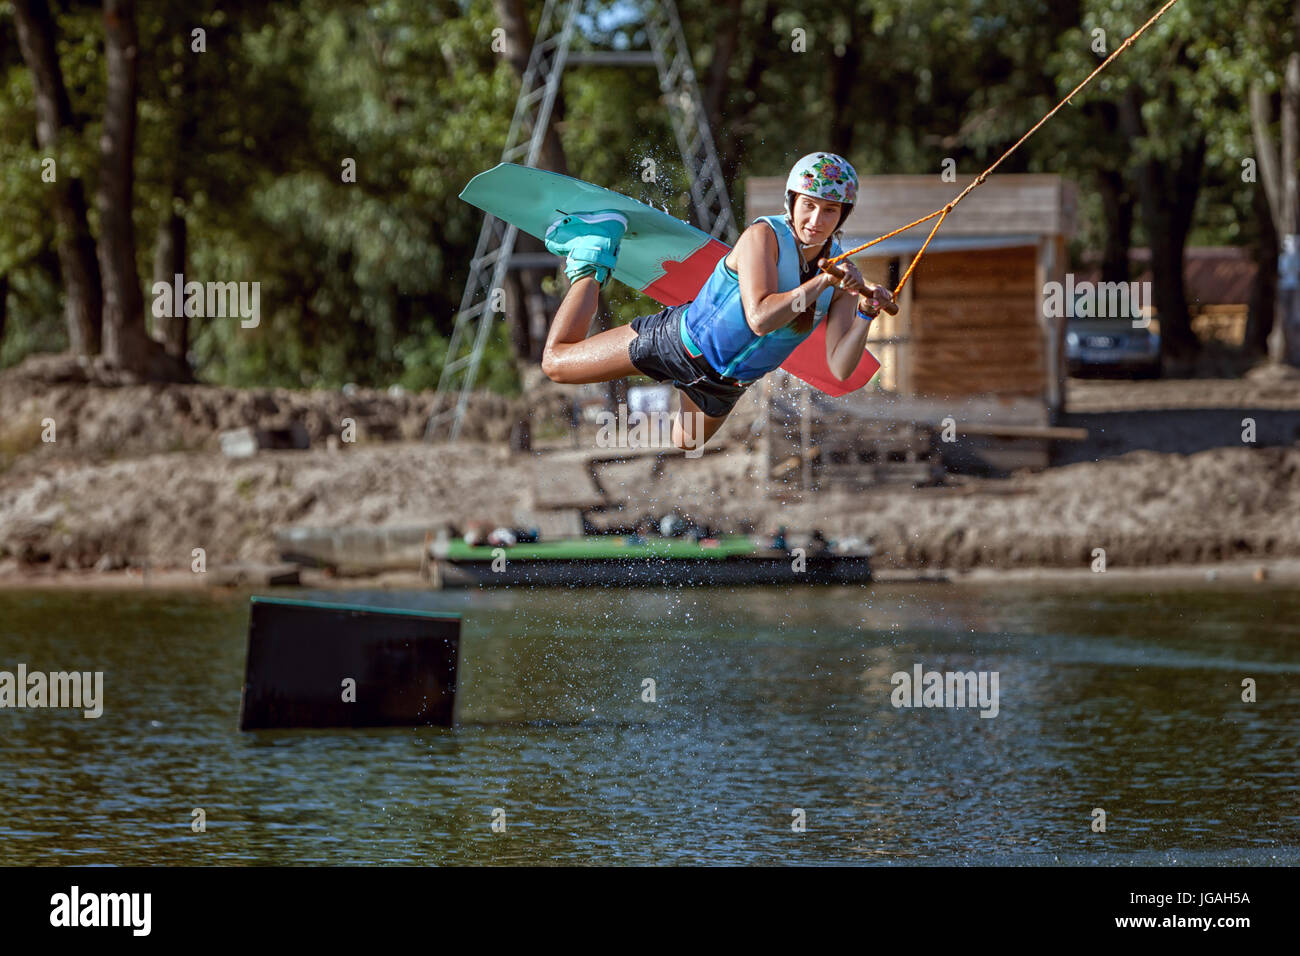 Summer sports wakeboarding, water skiing on the board, jumps and tricks. - Stock Image